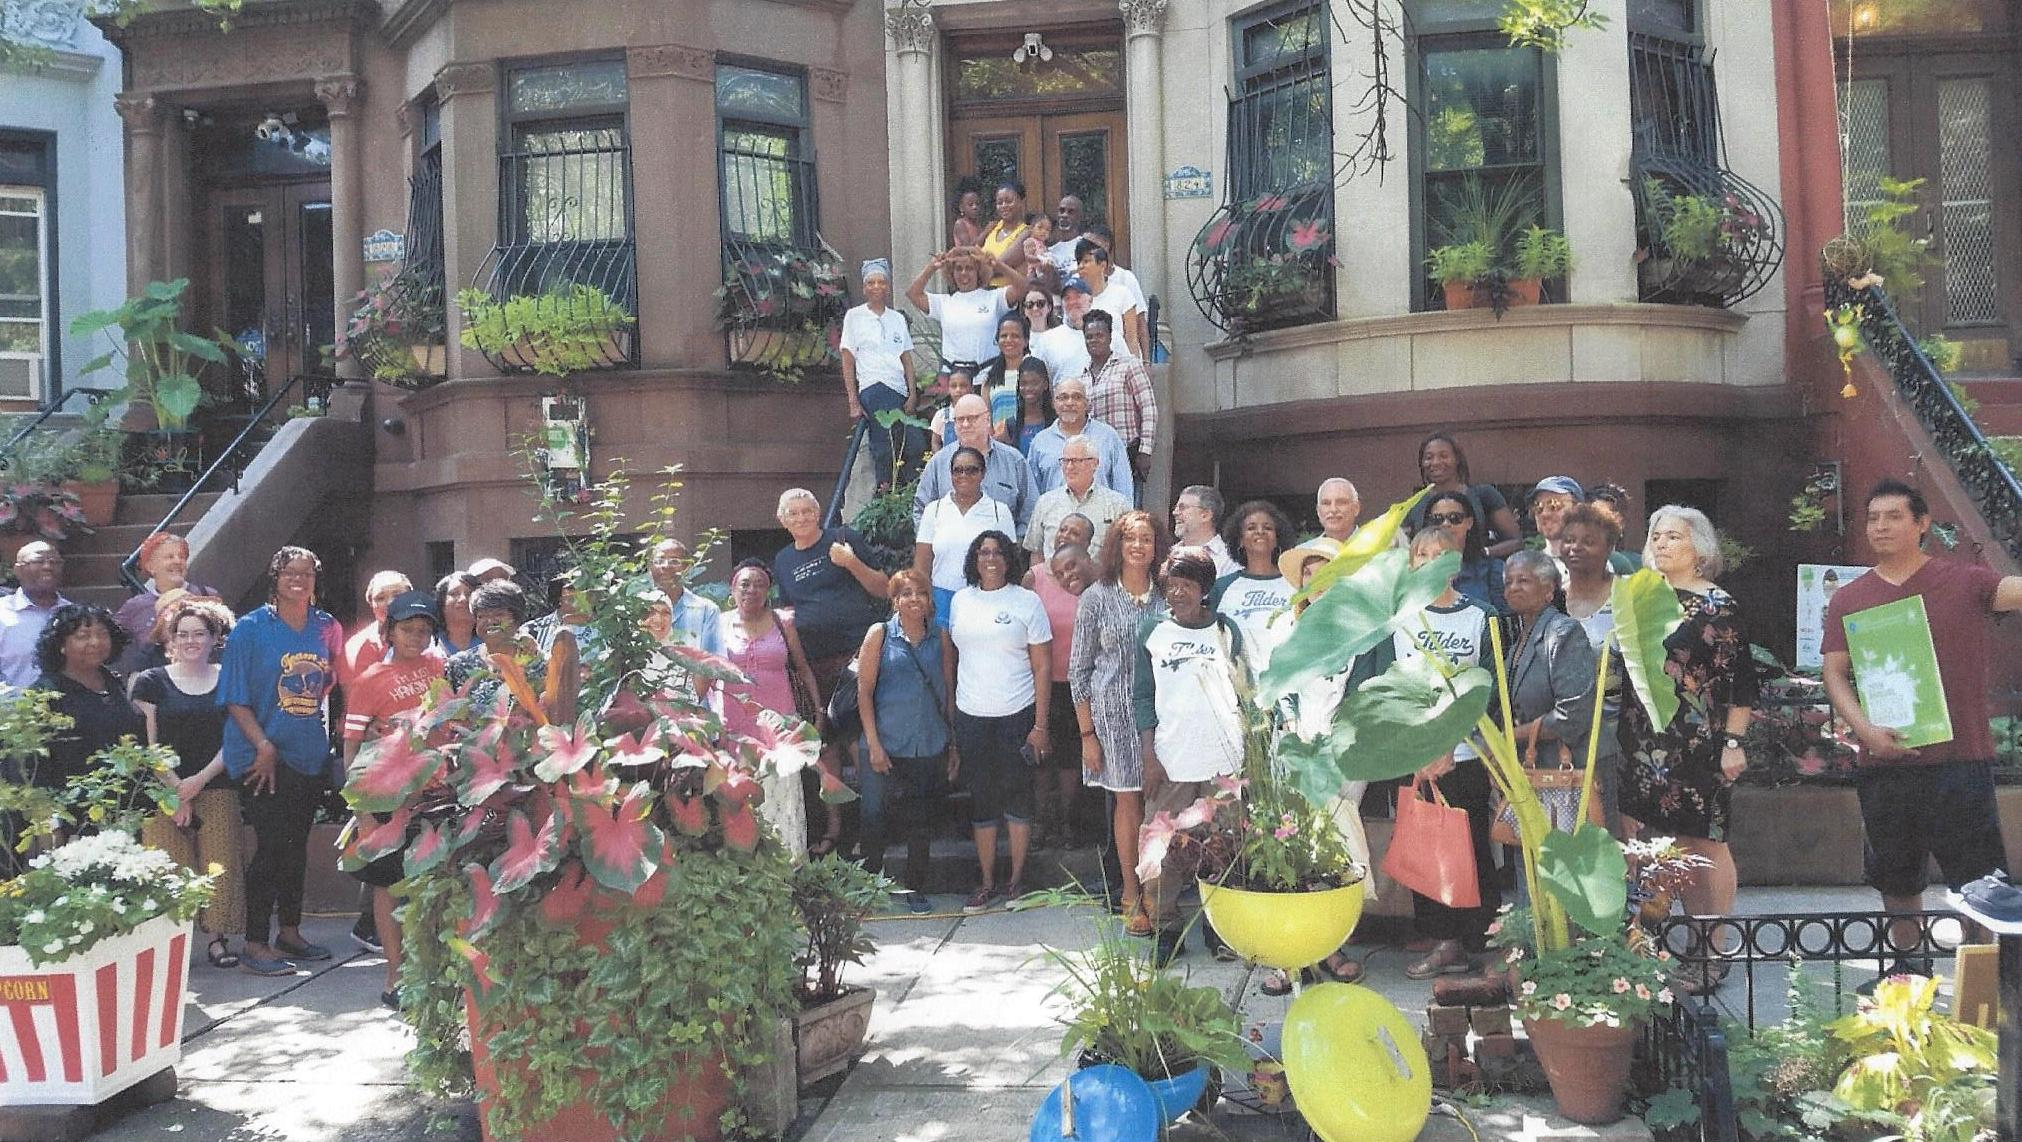 21 Photo on Lincoln after Winning Greenest Block Contest.jpg